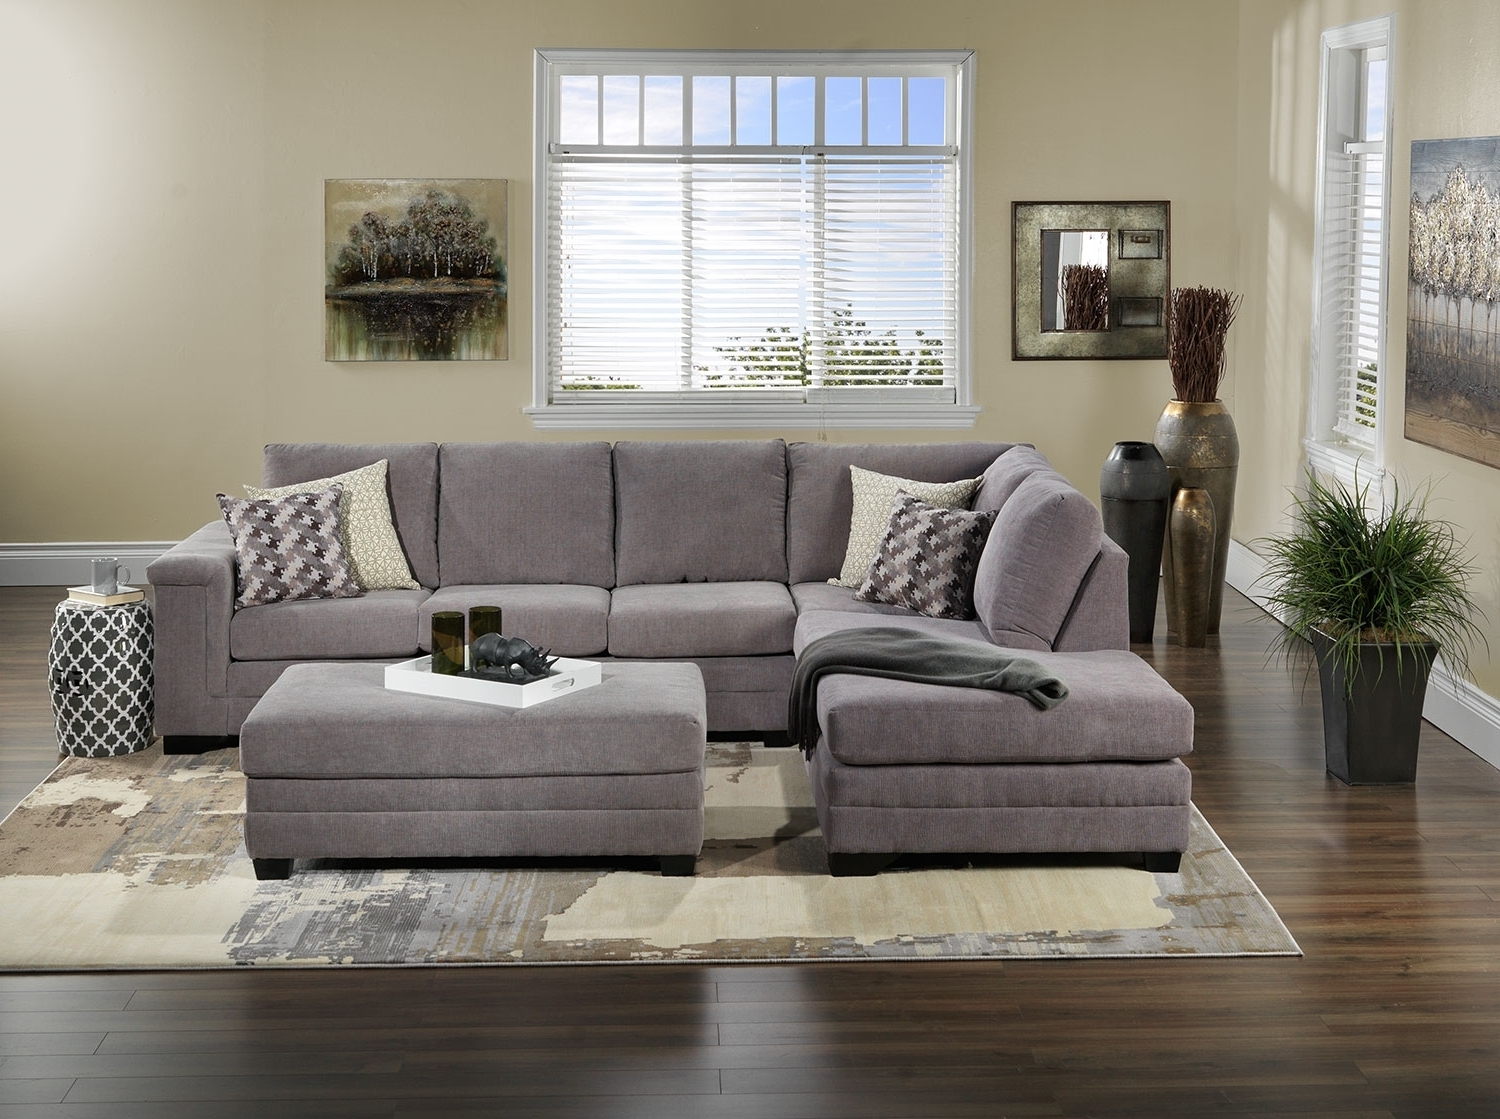 2019 Leons Sectional Sofas Regarding Leighton 2 Piece Sectional With Left Facing Chaise – Grey (View 11 of 20)